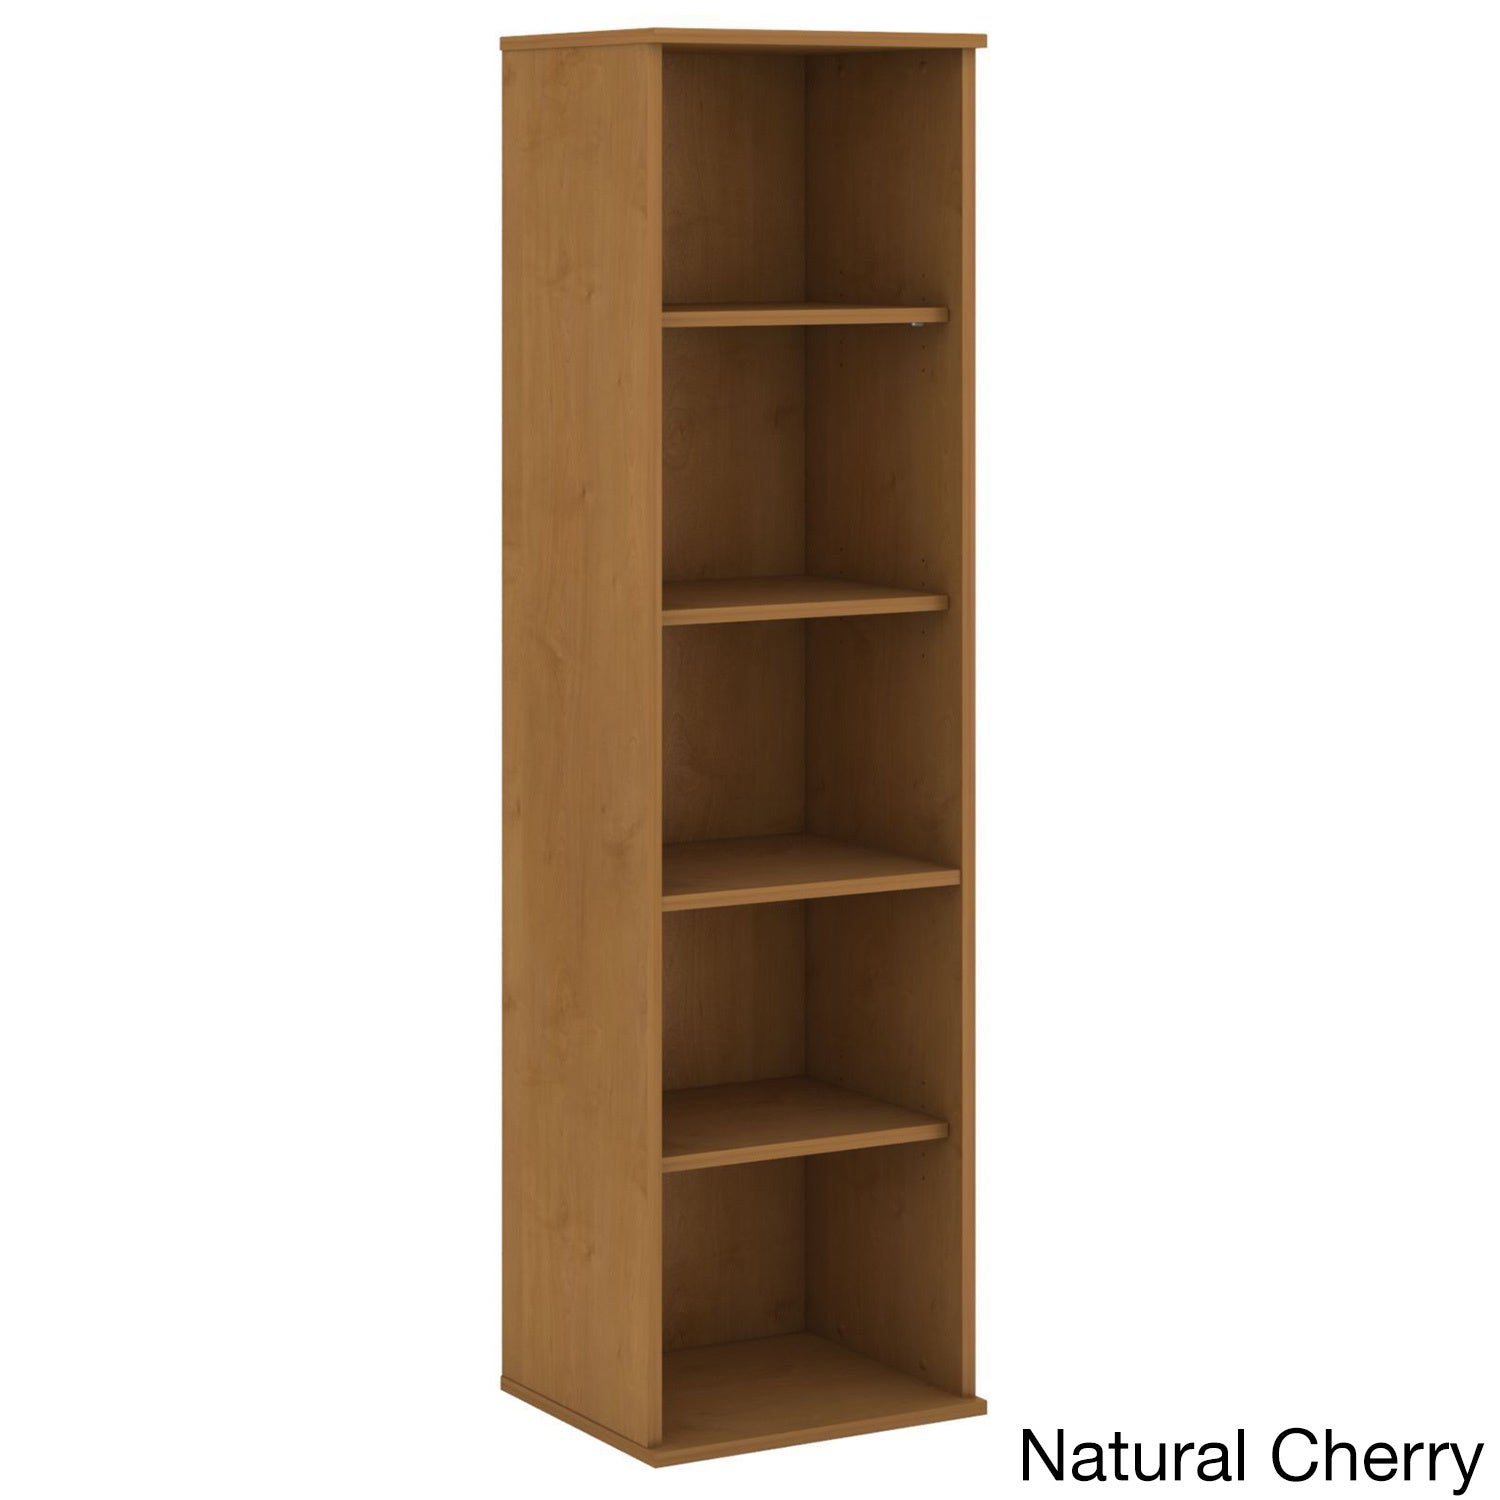 gallery home ashville cherry hutch furniture design amish top luxury mission solid shaker of awesome farmhouse bookcase wood